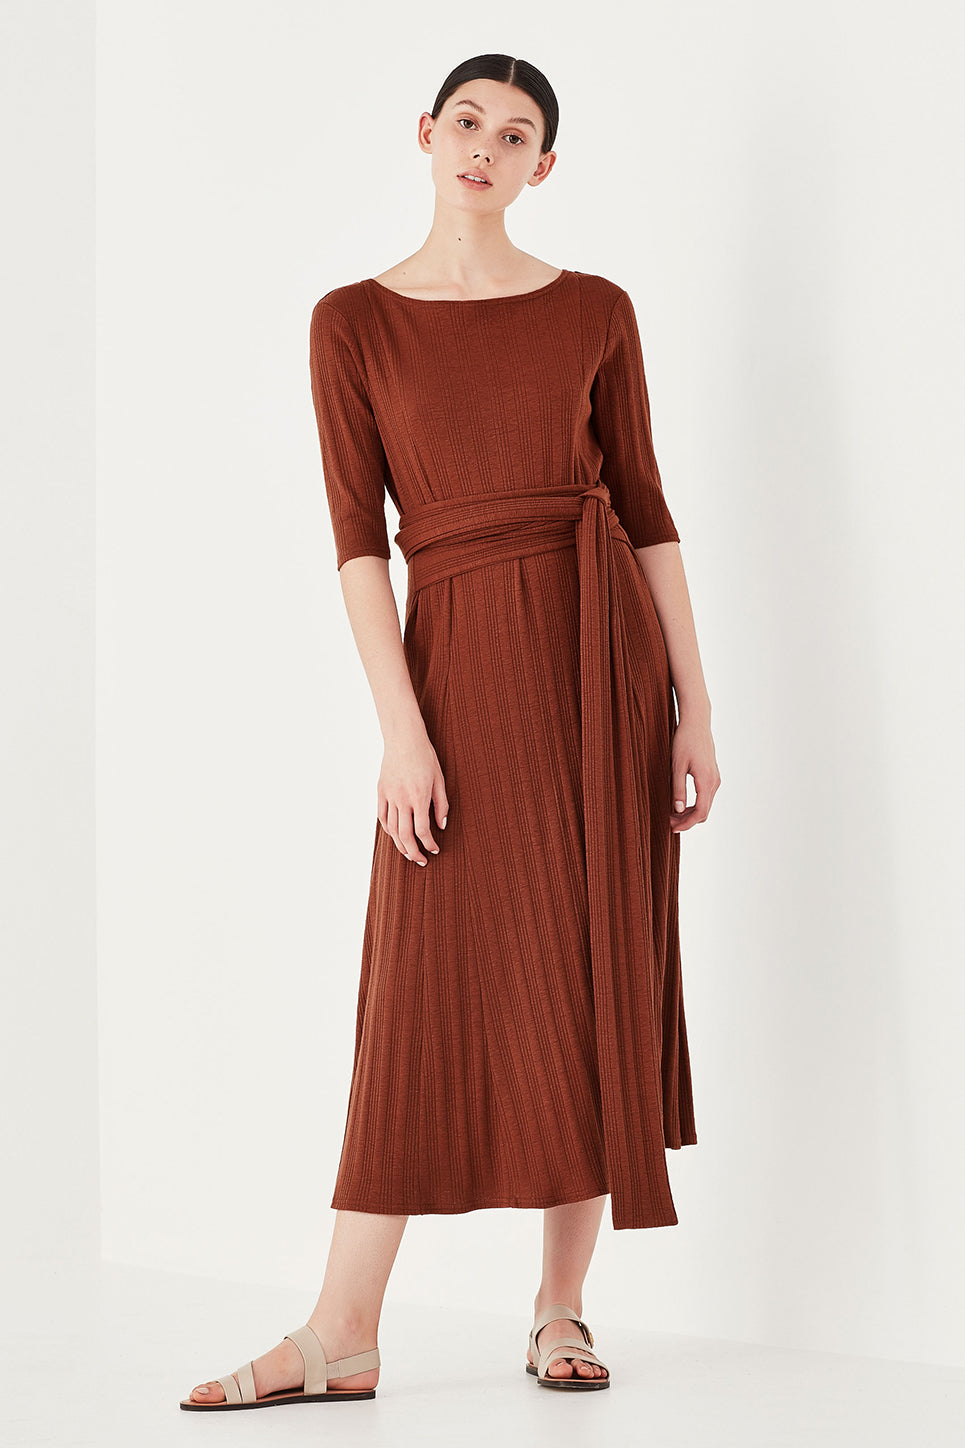 The Bella Dress in Burnt Sienna